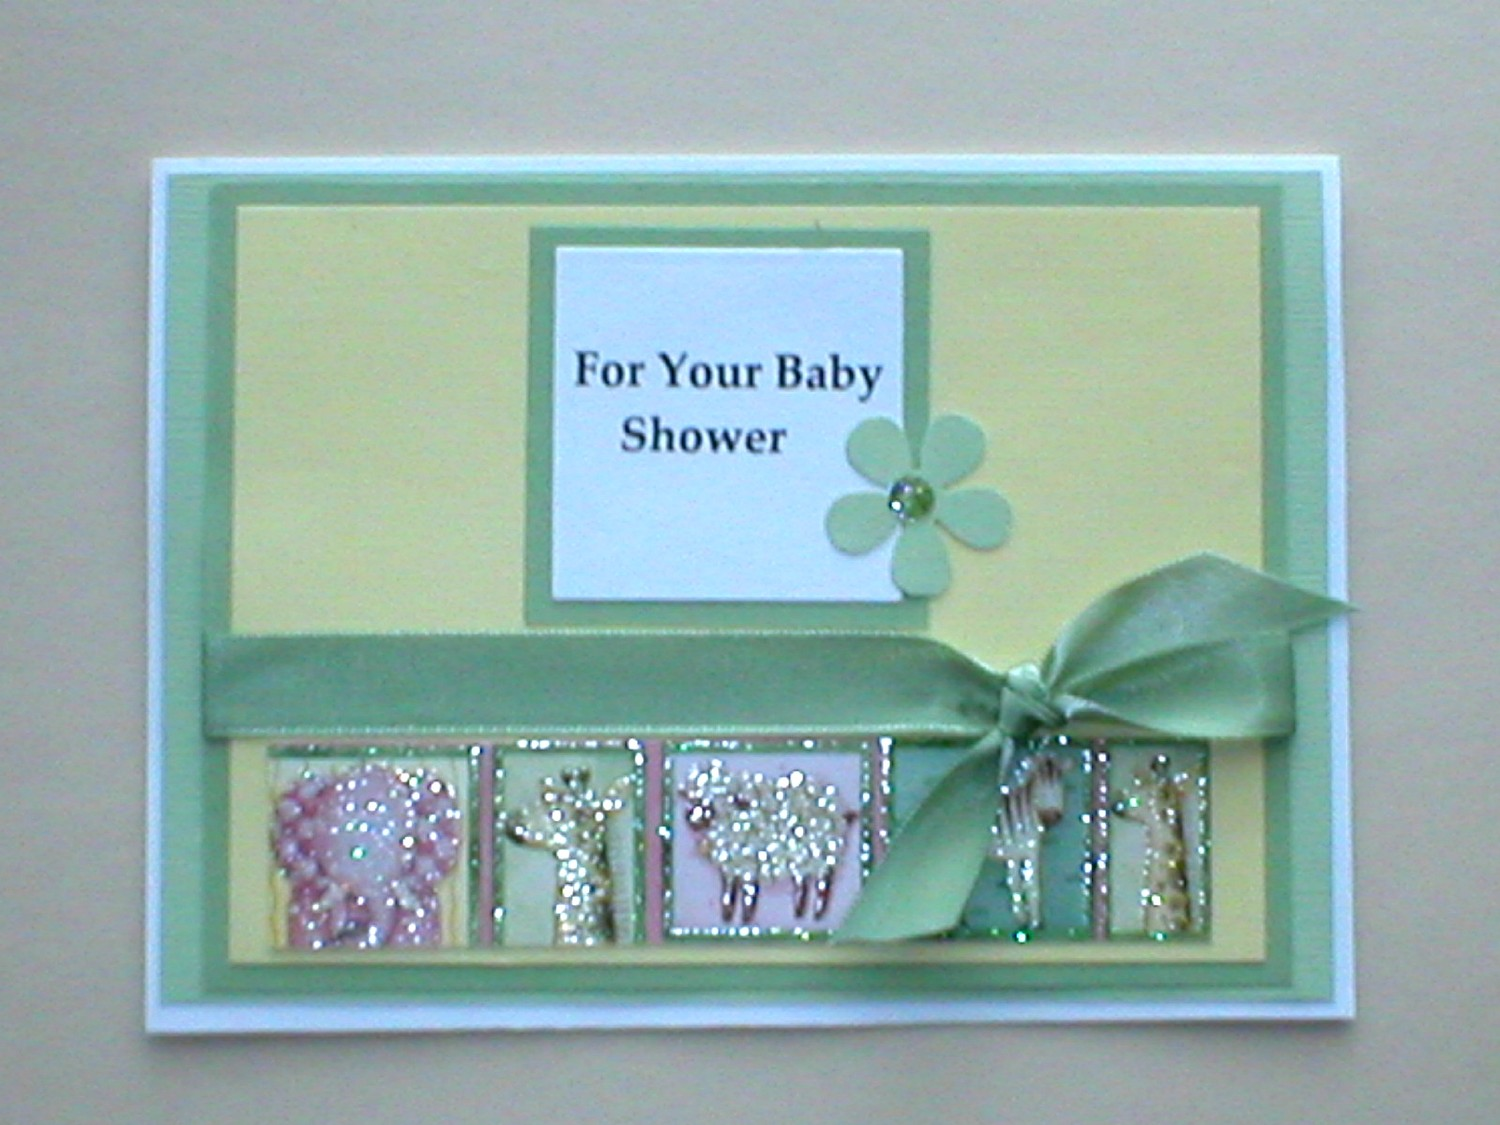 Baby Shower Handmade Card Ideas : Let39;s Celebrate!